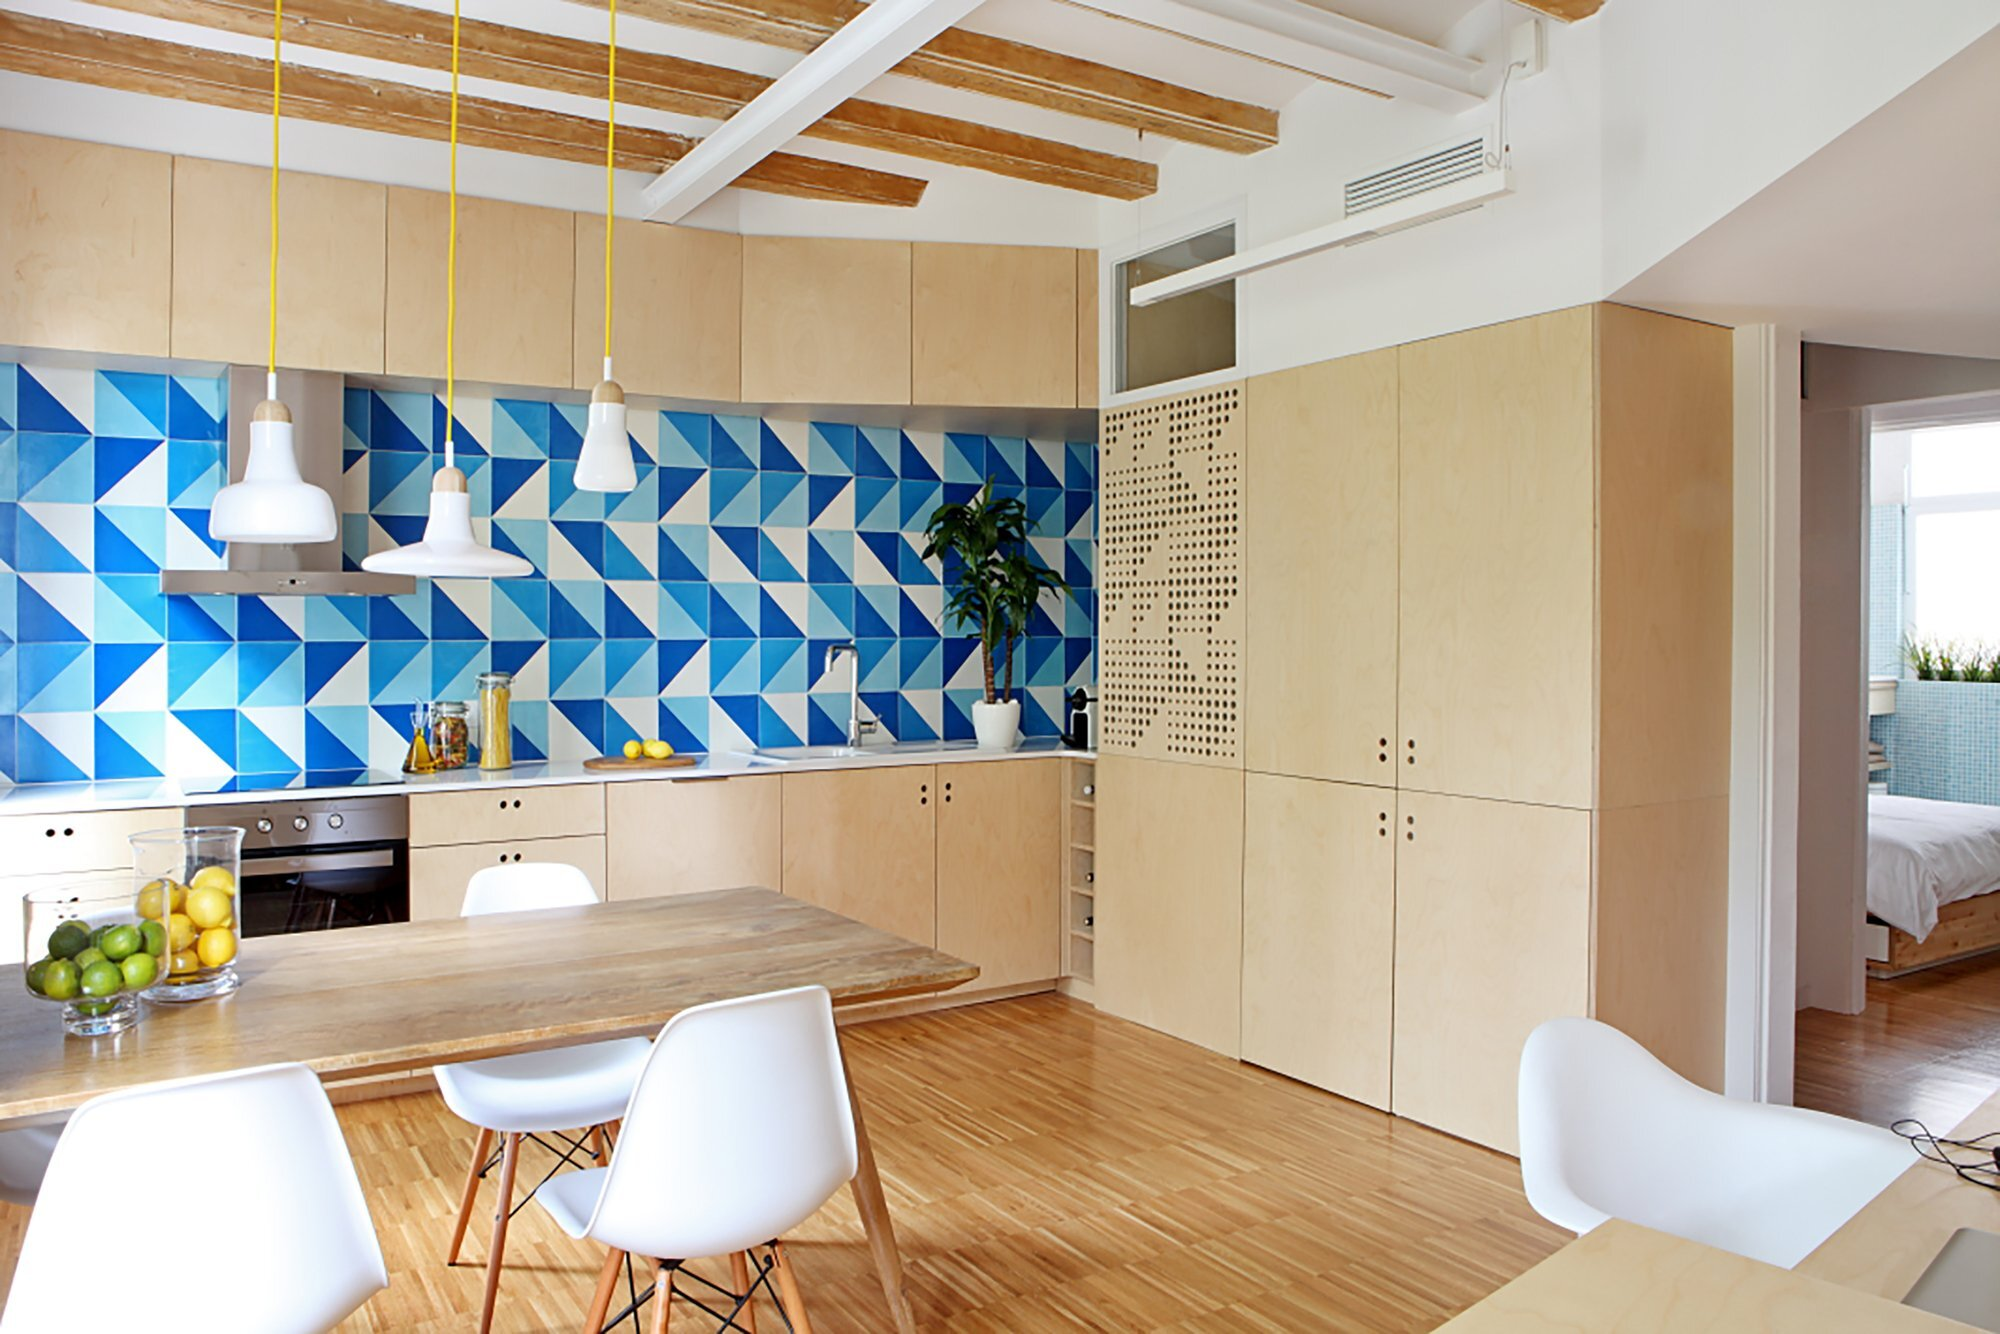 Perfect Piso Pujades11 U2013 A Bright And Airy Apartment In Barcelona Pictures Gallery